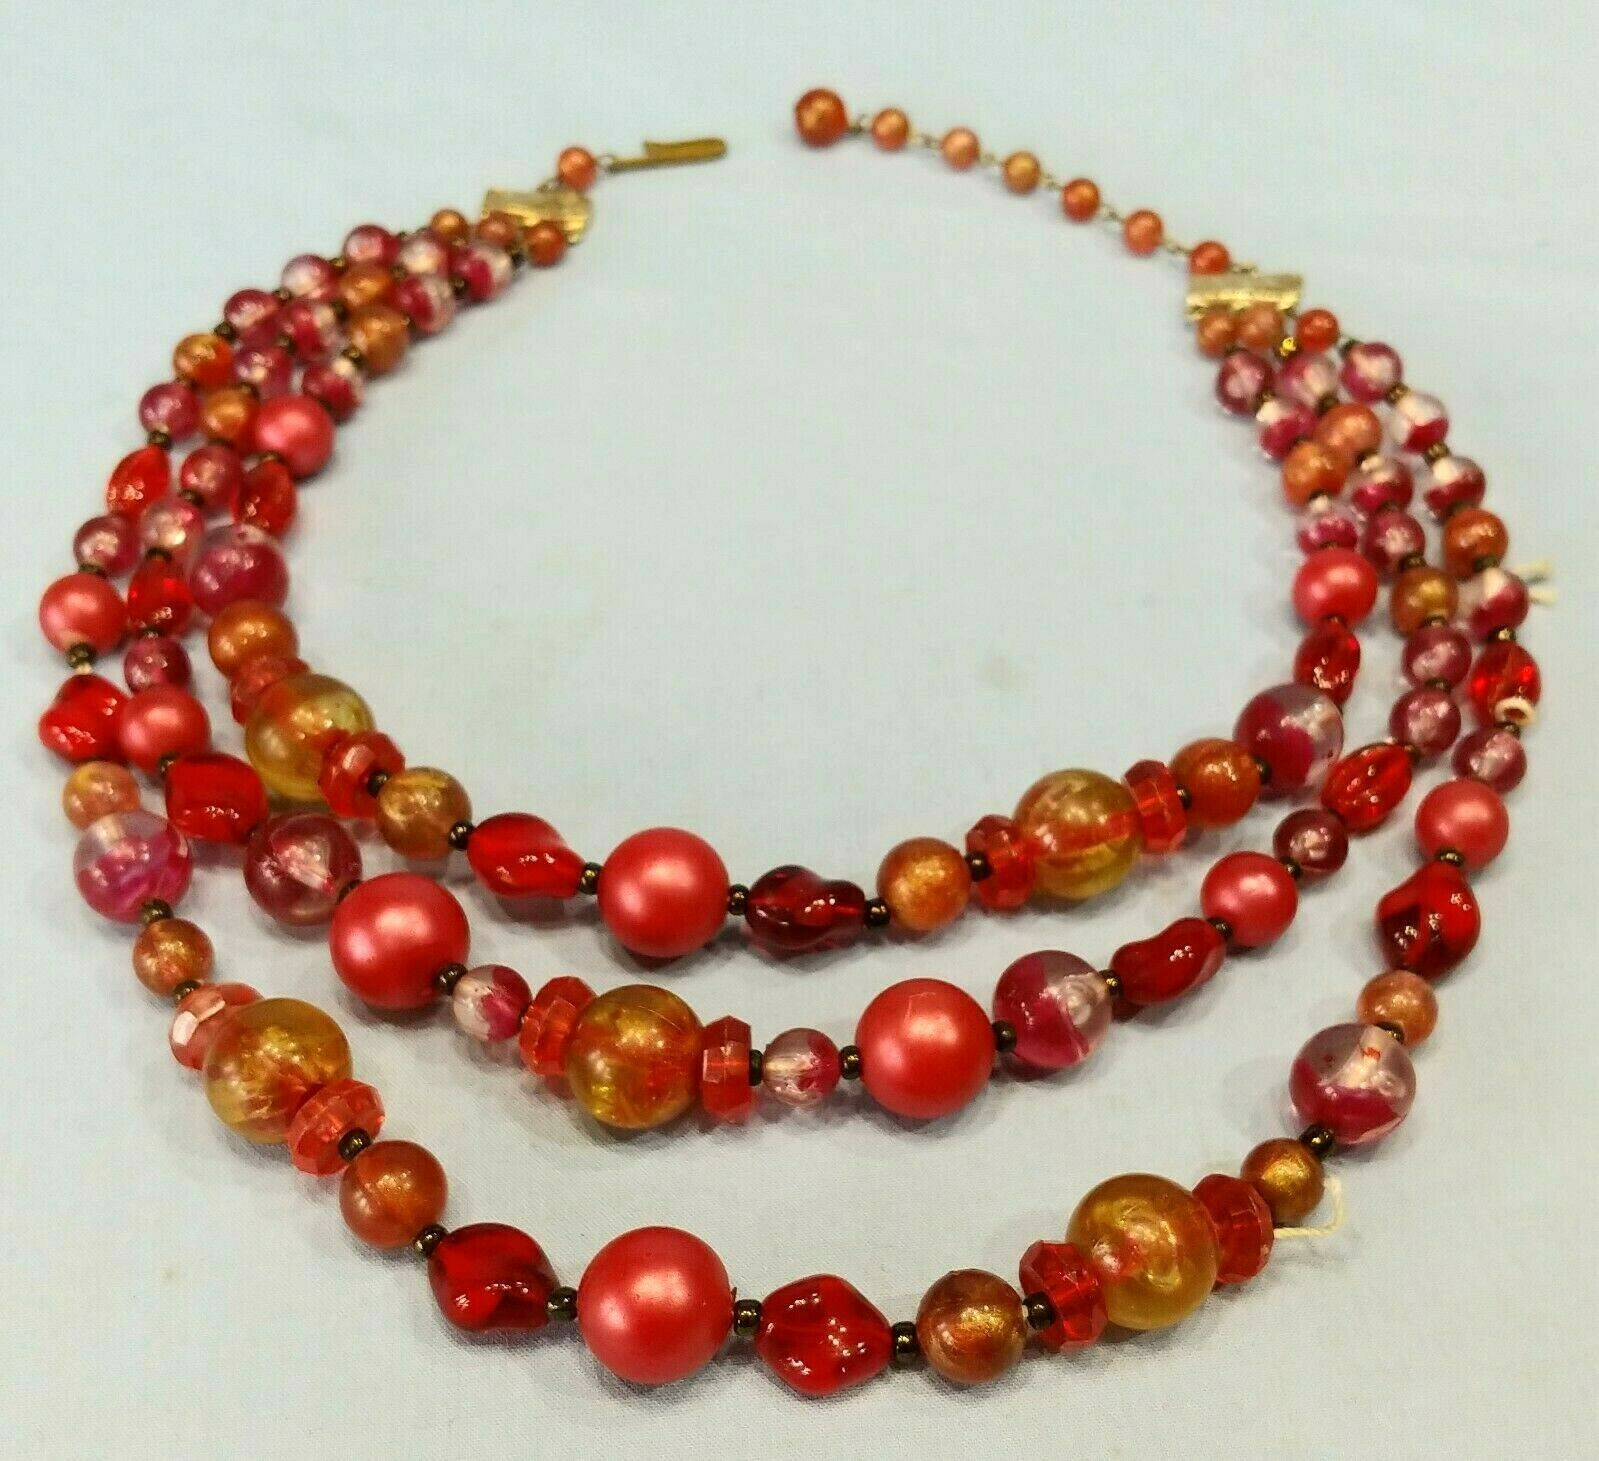 Clear Lucite Graduated Bead Necklace \u2013 Swirl Carved Look /& Crystal Rondelle Choker \u2013 1980s